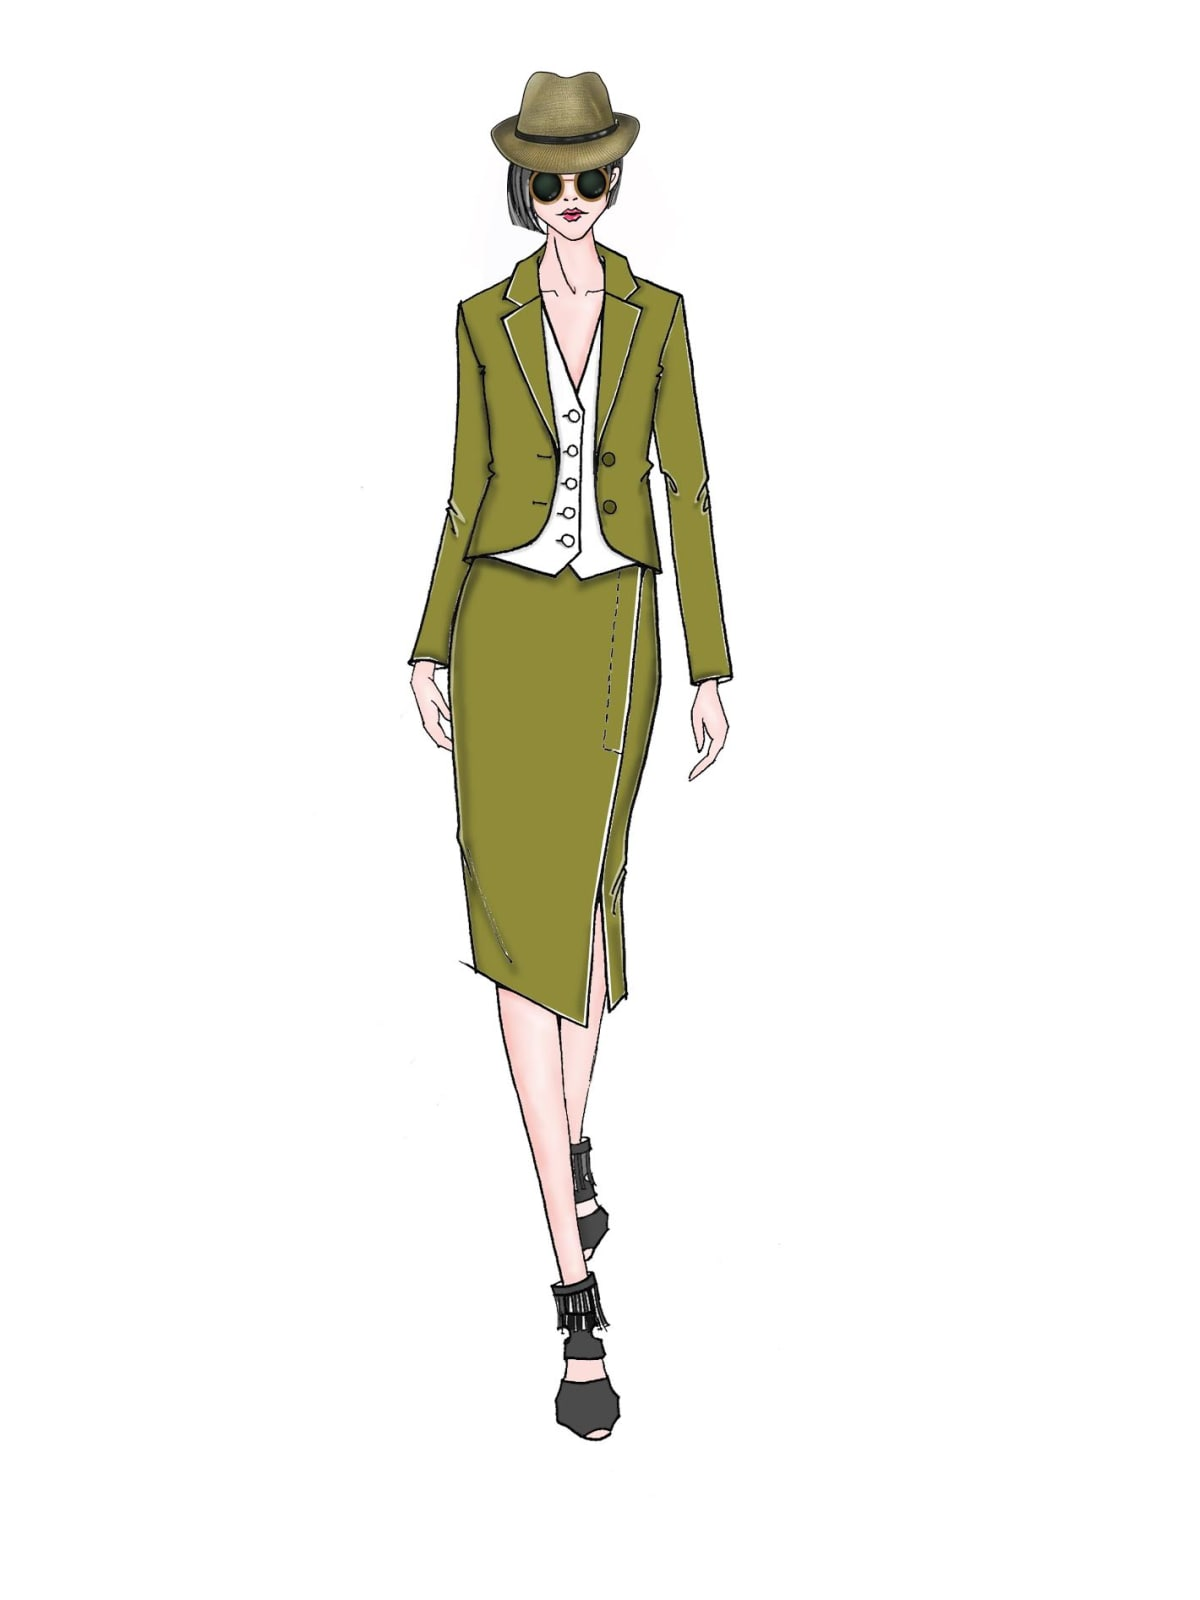 Taoray Wang inspiration sketch New York Fashion Week spring 2016